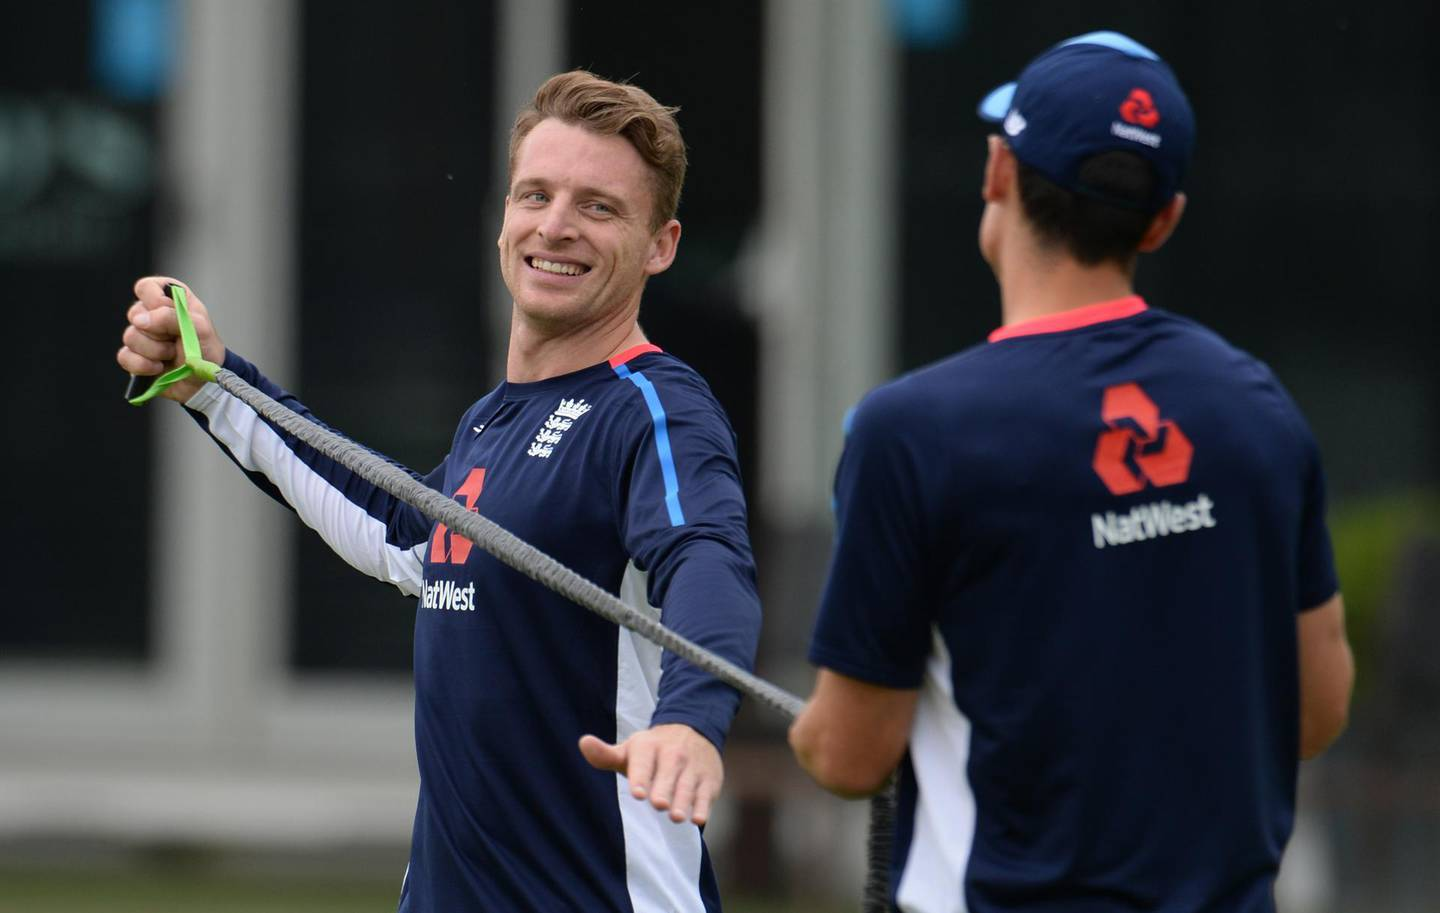 LONDON, ENGLAND - MAY 21 : Jos Buttler smiles during a training session before the 1st Test match between England and Pakistan at Lord's cricket ground on May 21, 2018 in London, England. (Photo by Philip Brown/Getty Images)